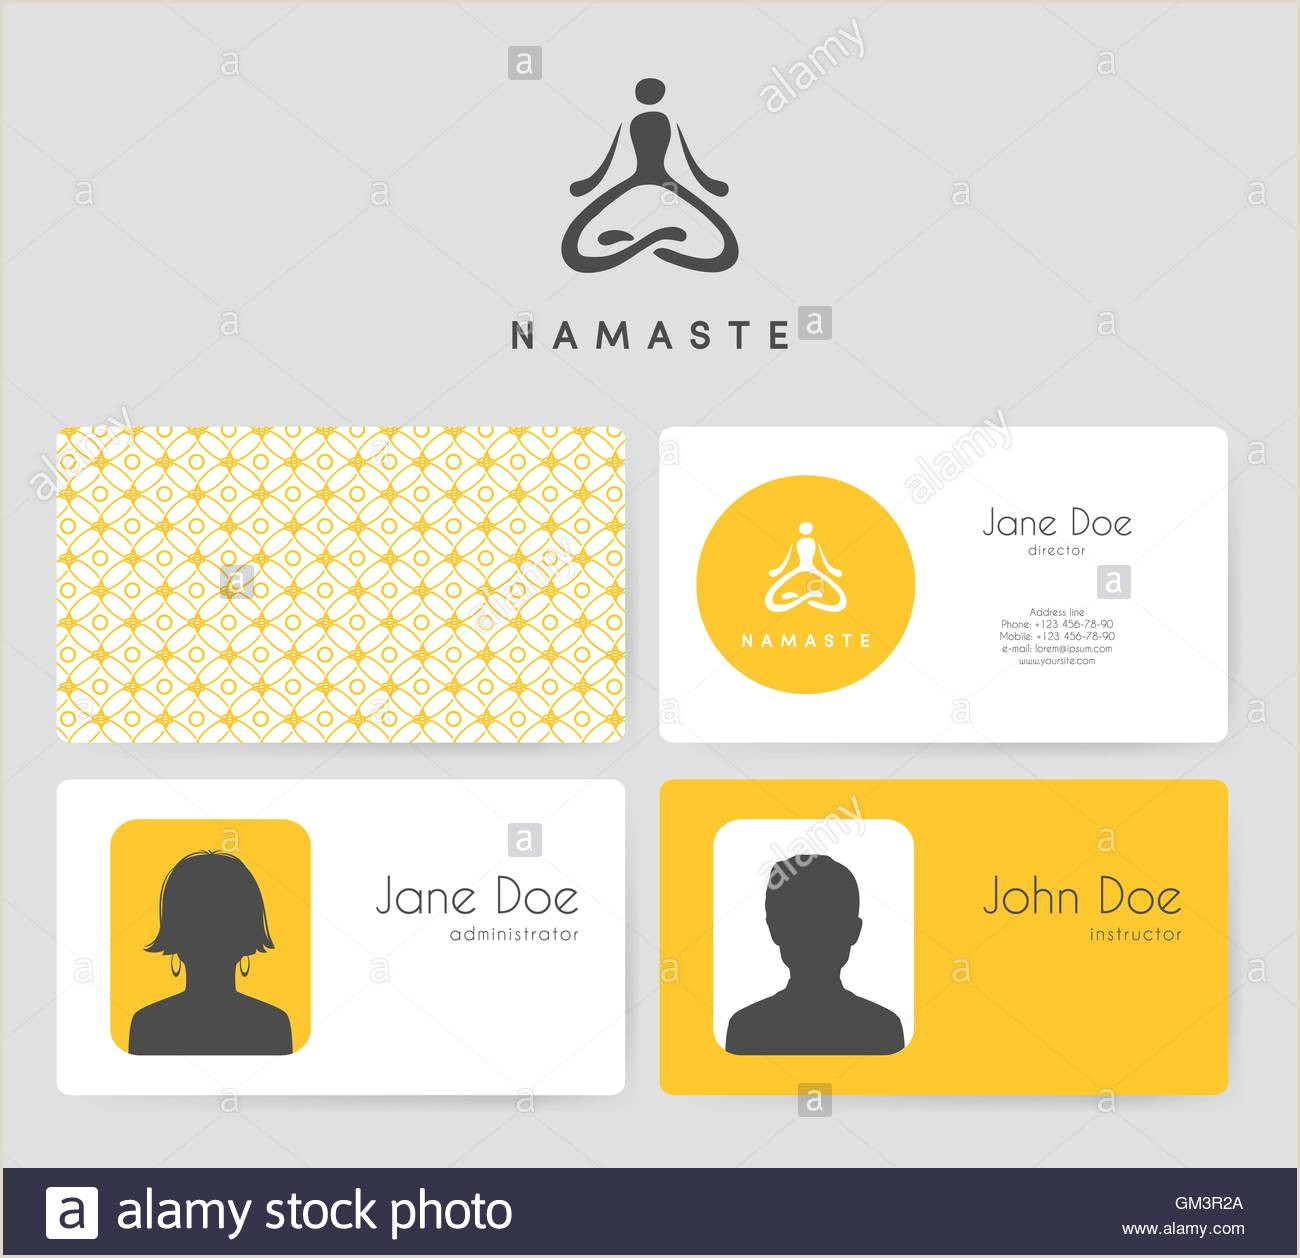 Unique Yoga Business Cards Yoga Business Cards High Resolution Stock Graphy And